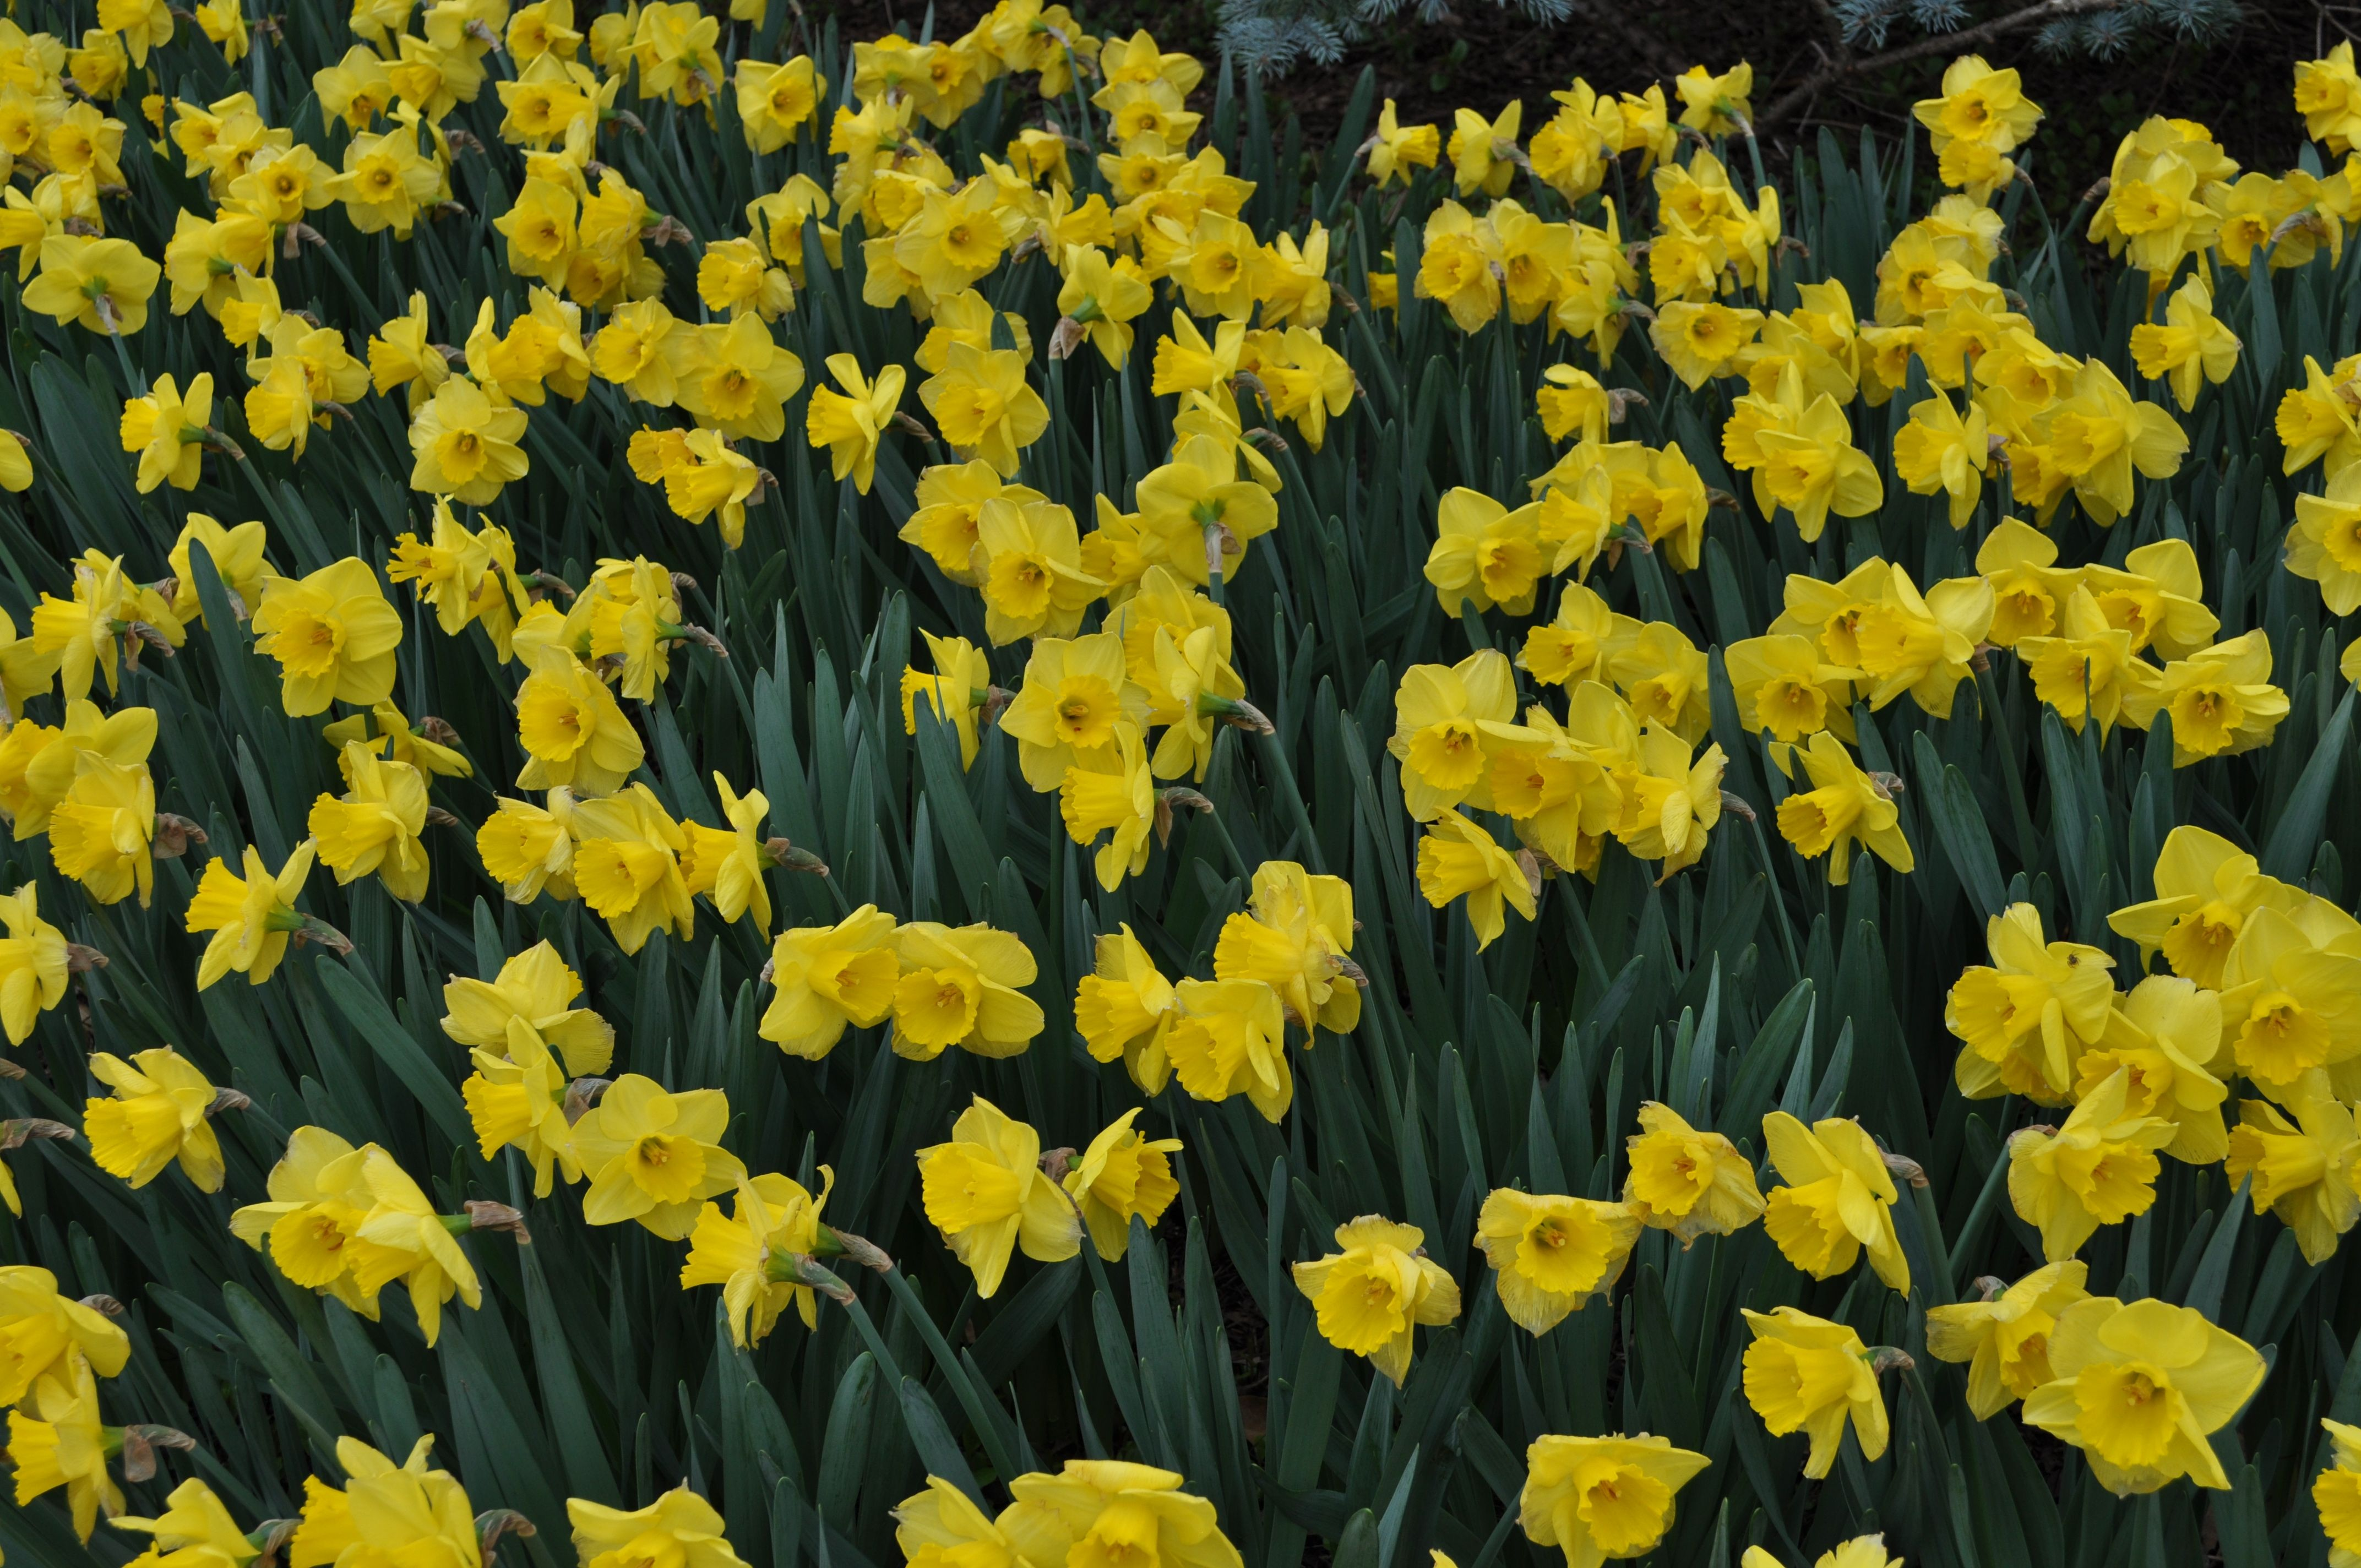 Daffodils The Most Dependable Spring Flowering Bulb Is The Daffodil Especially If You Enjoy Yellow Th Spring Flowering Bulbs Chicken Wire Fence Daffodils